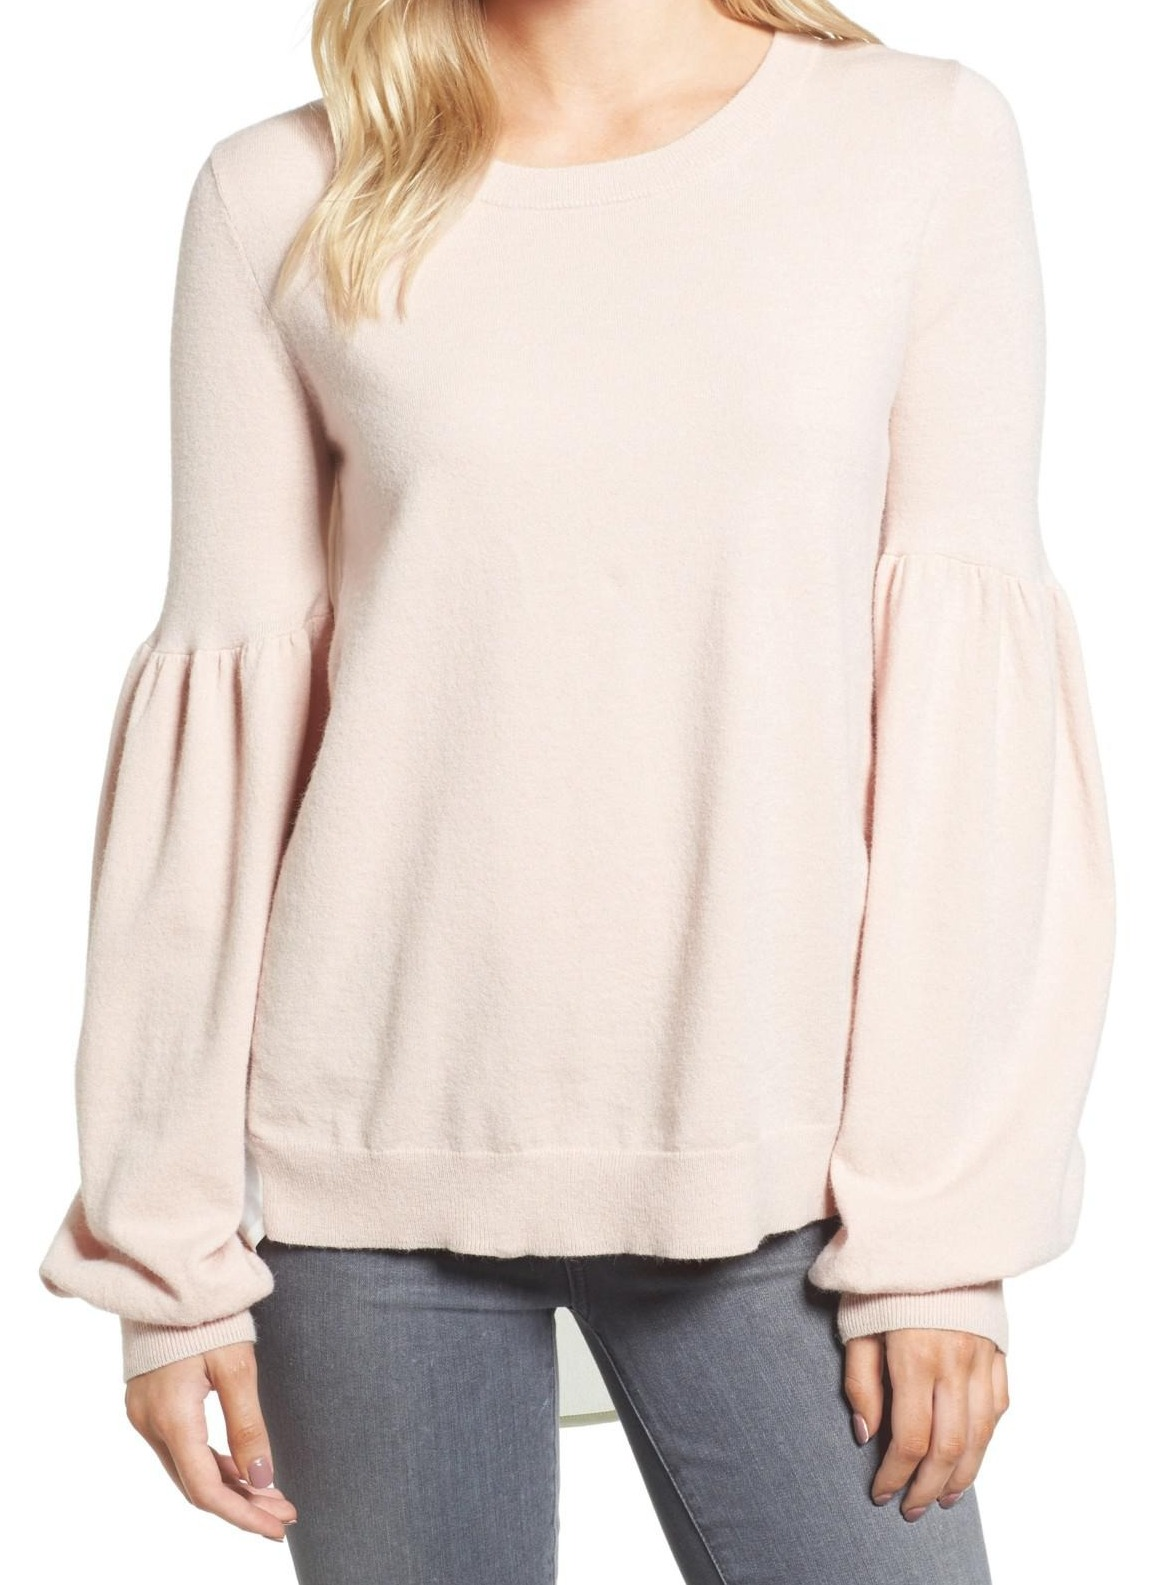 d53890c4b0 Chelsea28 NEW Pink Women s Size Large L Boat Neck Balloon-Sleeve Sweater   577